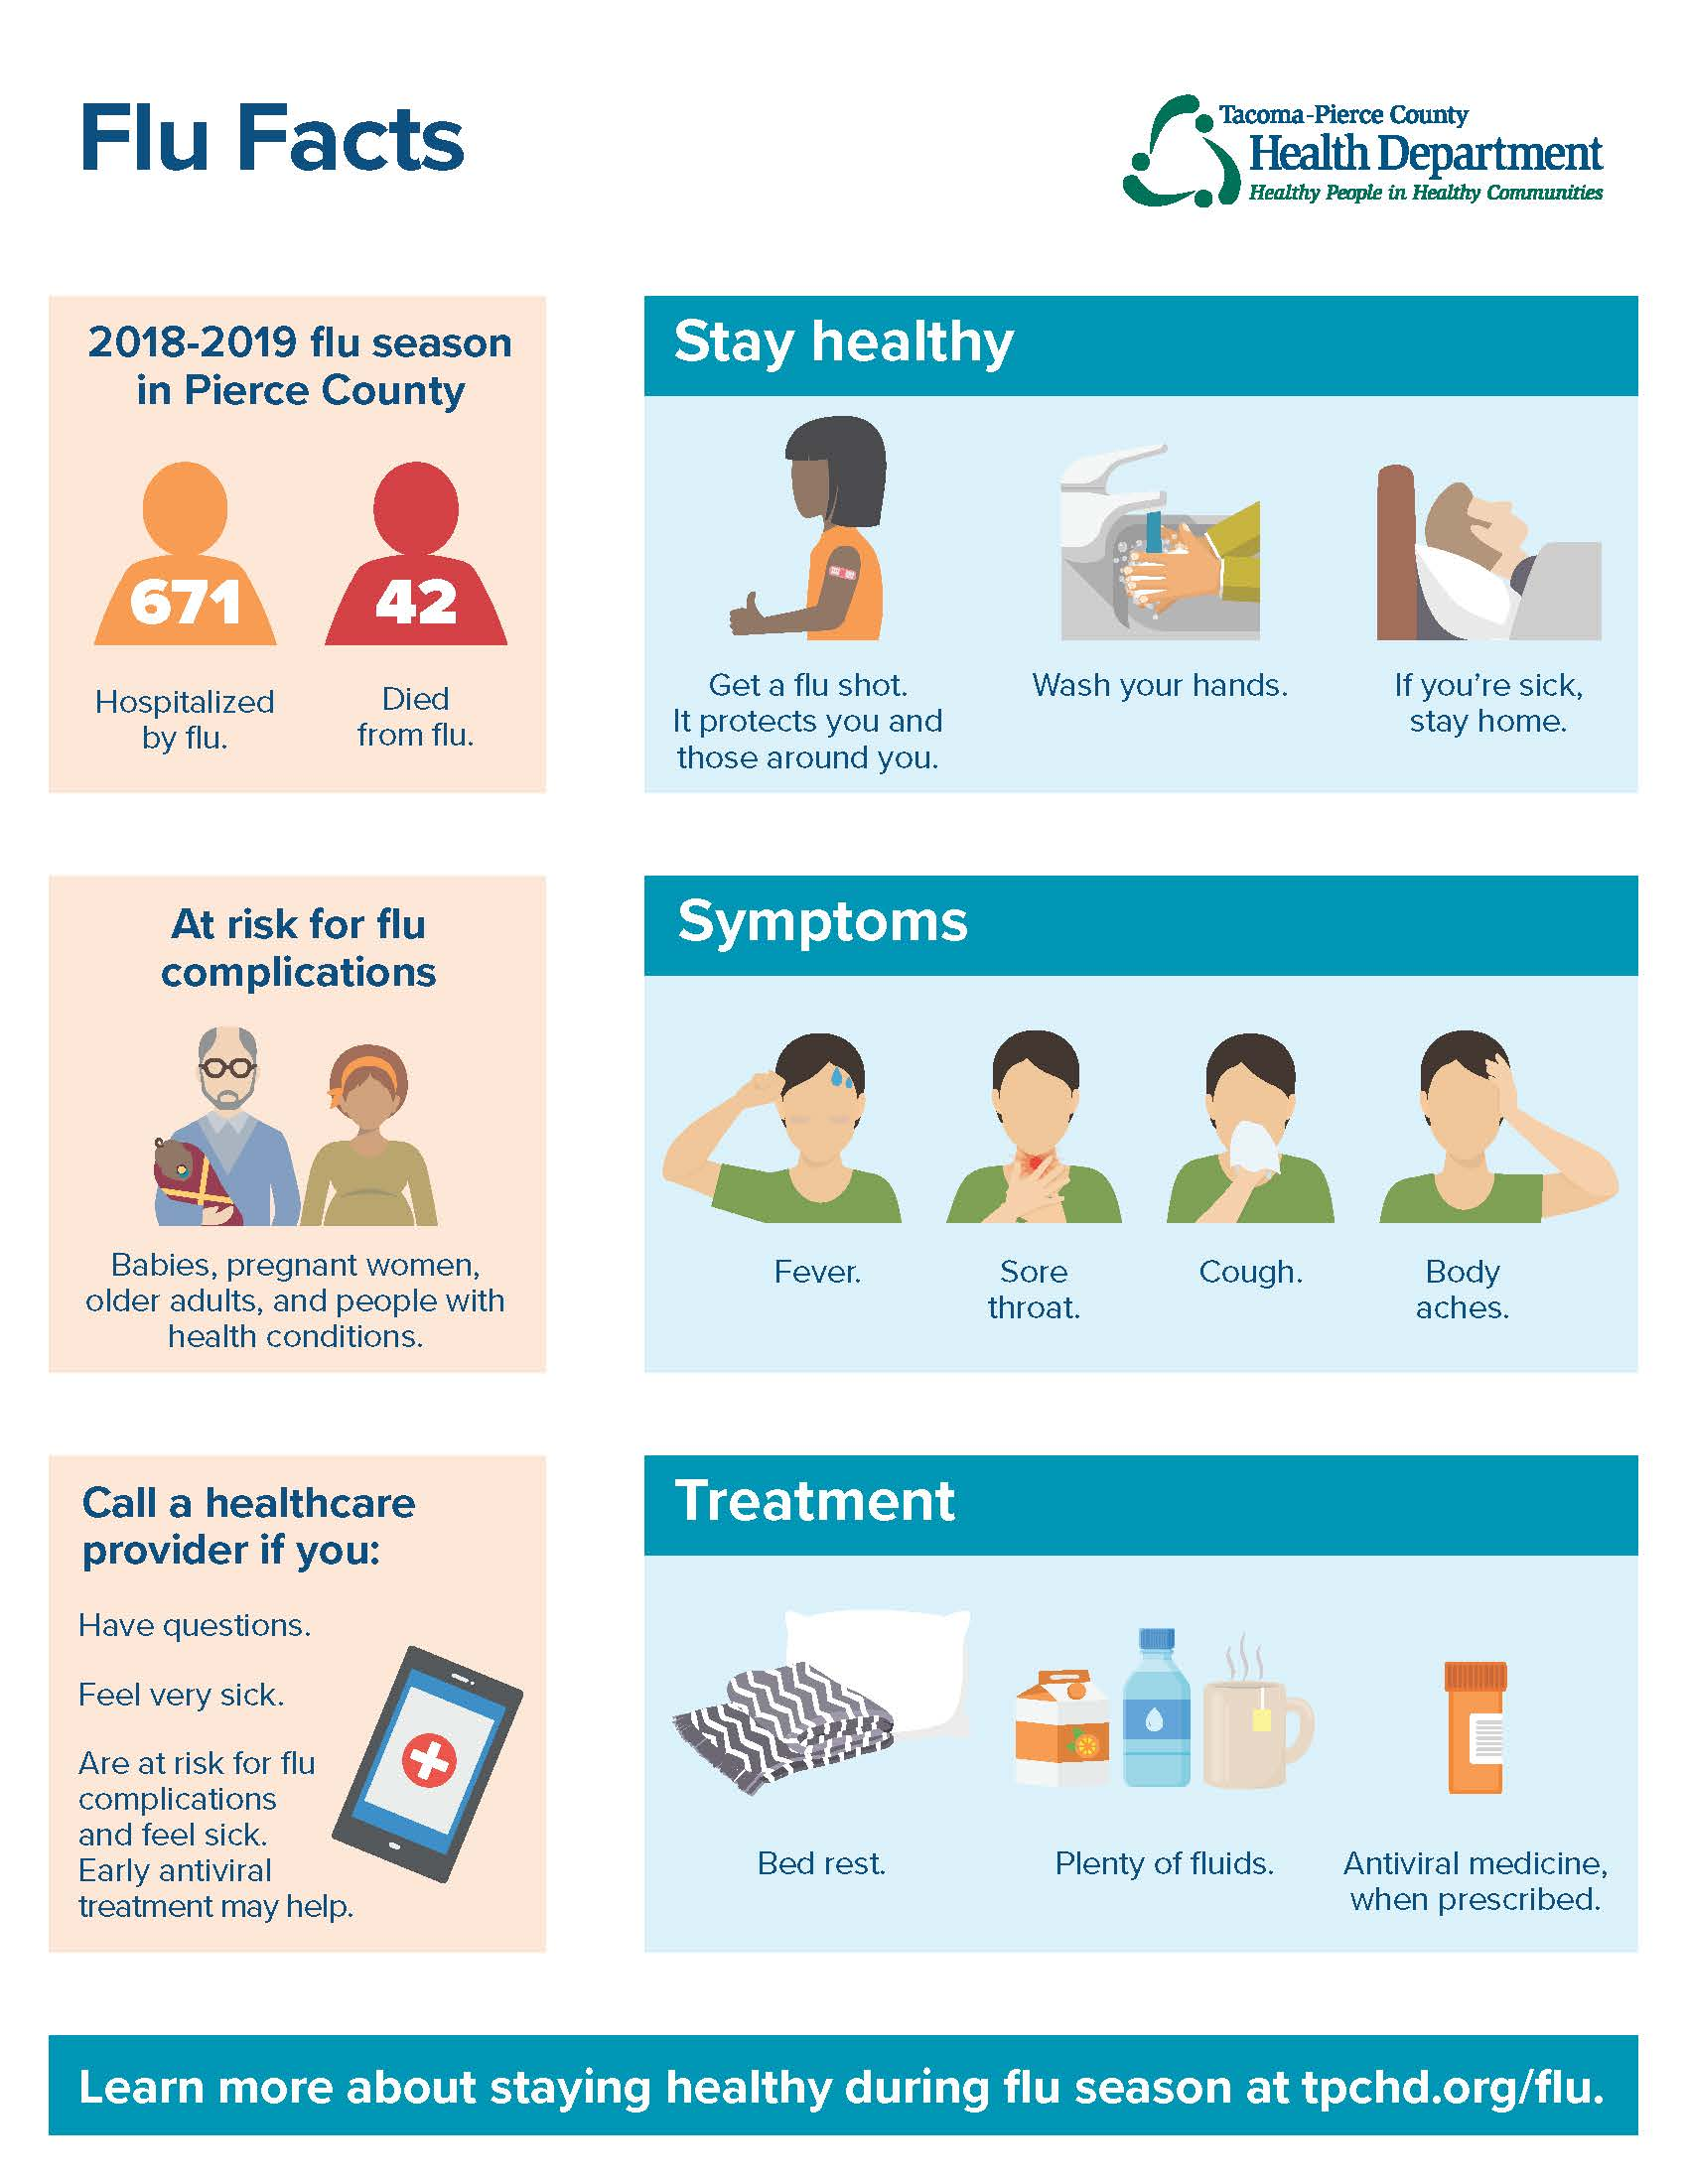 2019 Flu Facts Infographic with information about the flu in Pierce County during the 2018-2019 flu season and how to stay healthy.